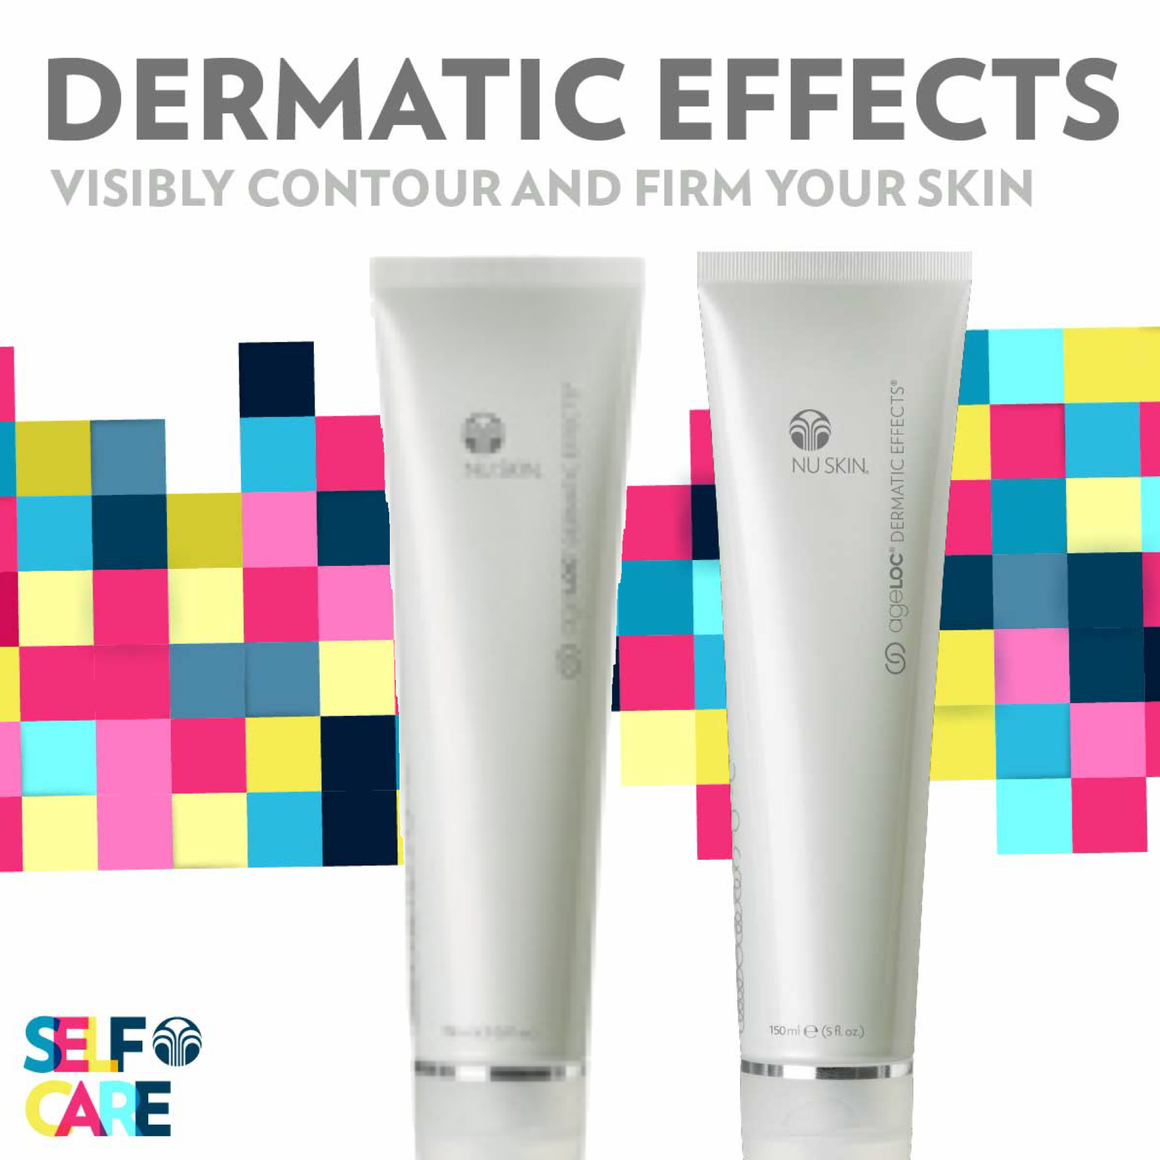 Dermatic Effects - 2 pack - save $25